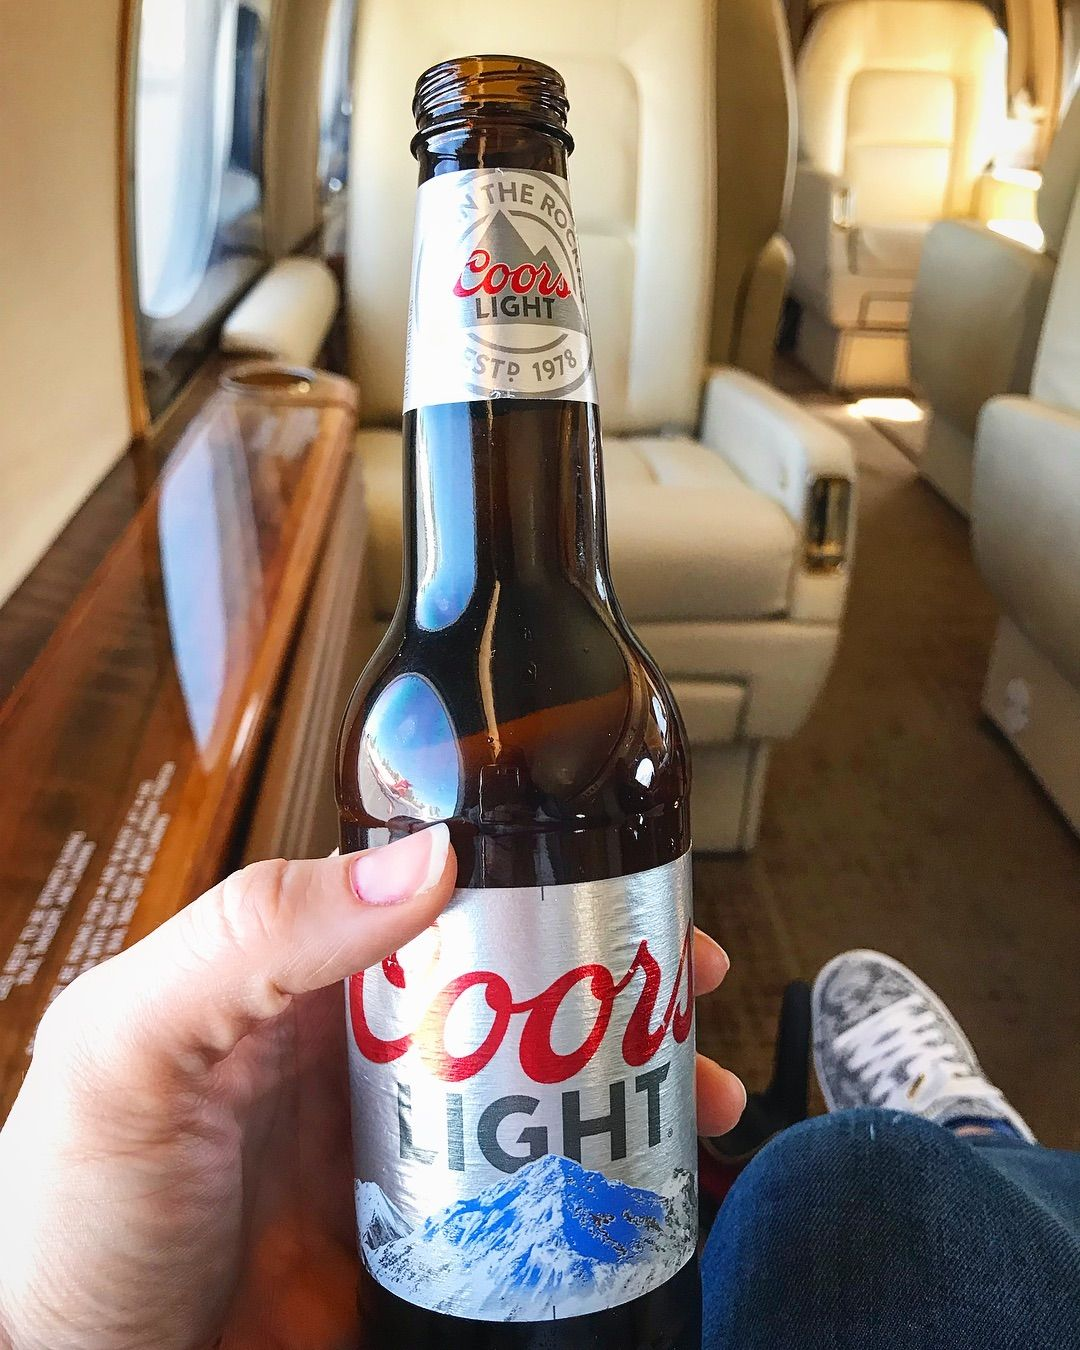 Private Jet Flights, but Coors Light in Hand. #chef #cheflife #getinmybelly #coorlight #privatejet #gulfstream #flylikeag6  #anotherdayanotherdollar #hawaiibound #oahu #beergirl #lavegas #lasvegasprivatechef